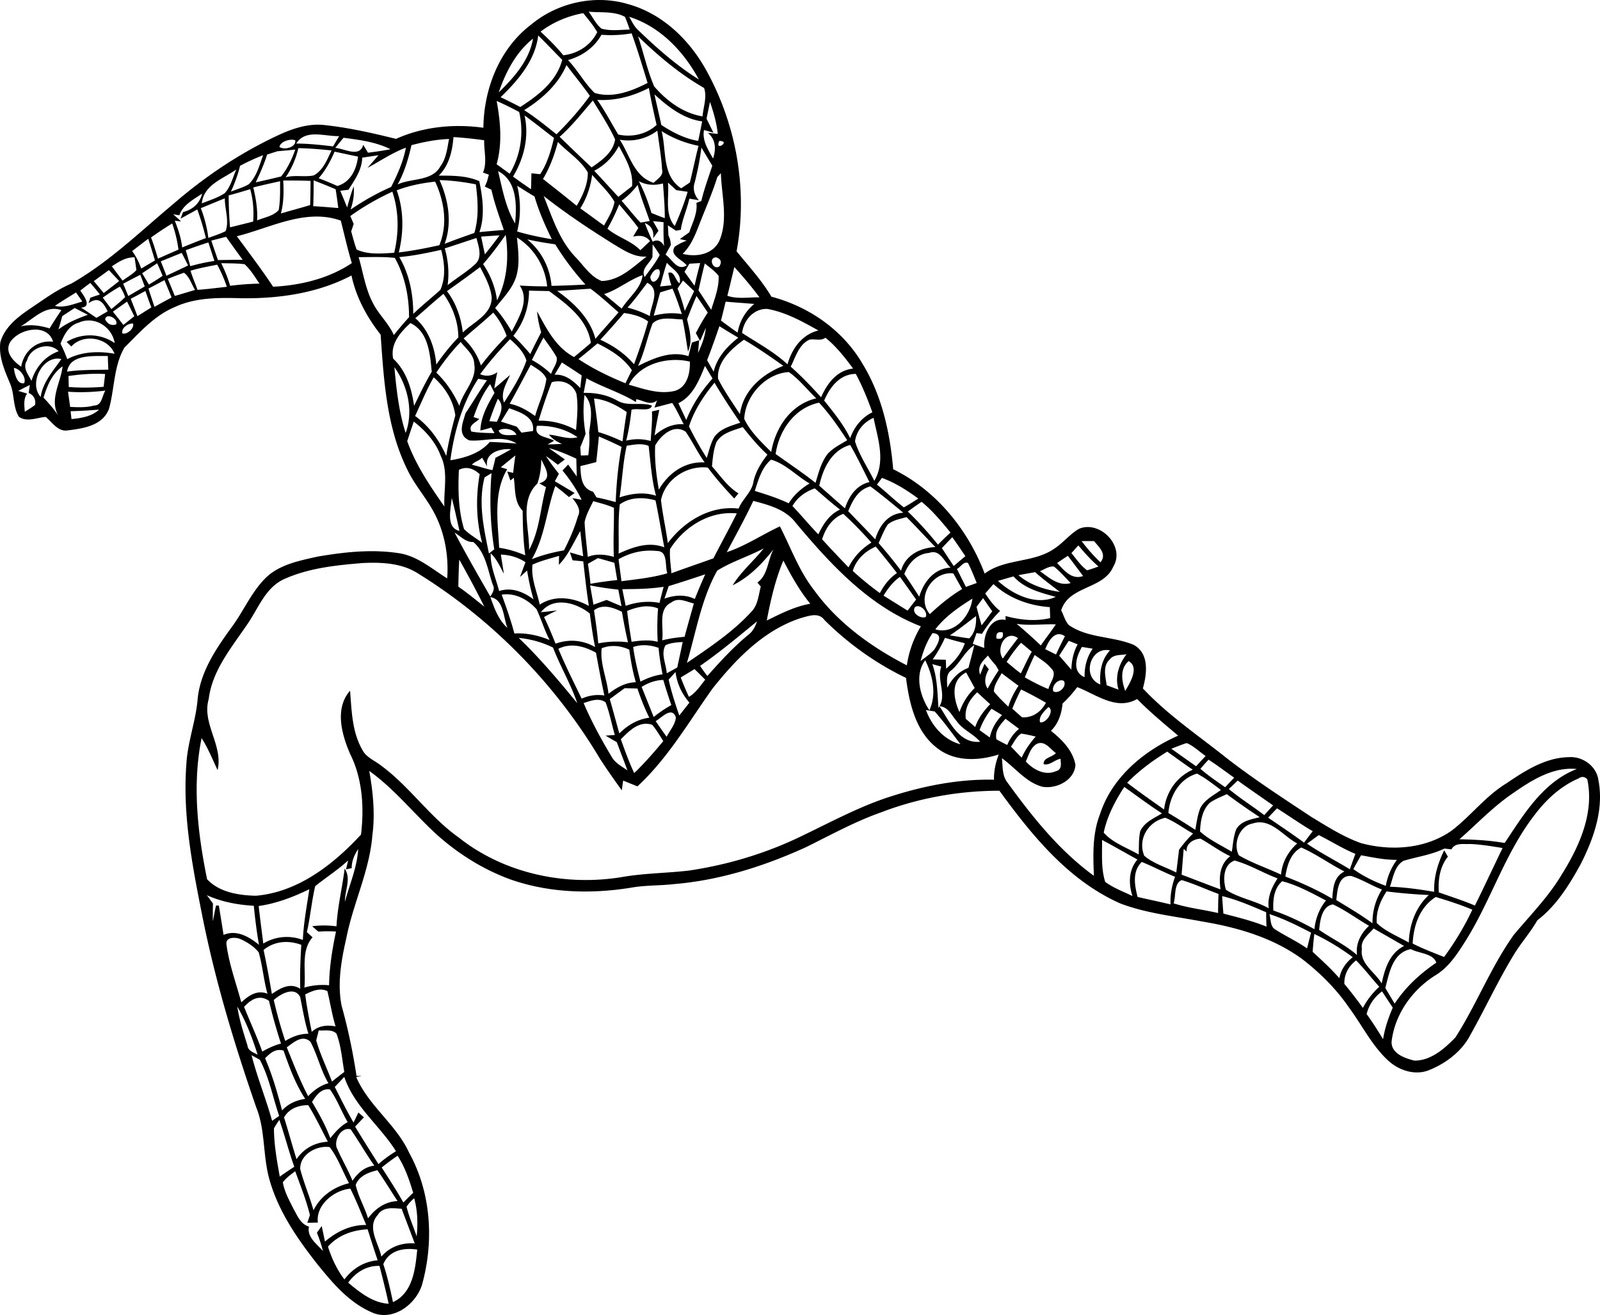 spiderman coloring pages kids printable - Drawings For Kids To Color